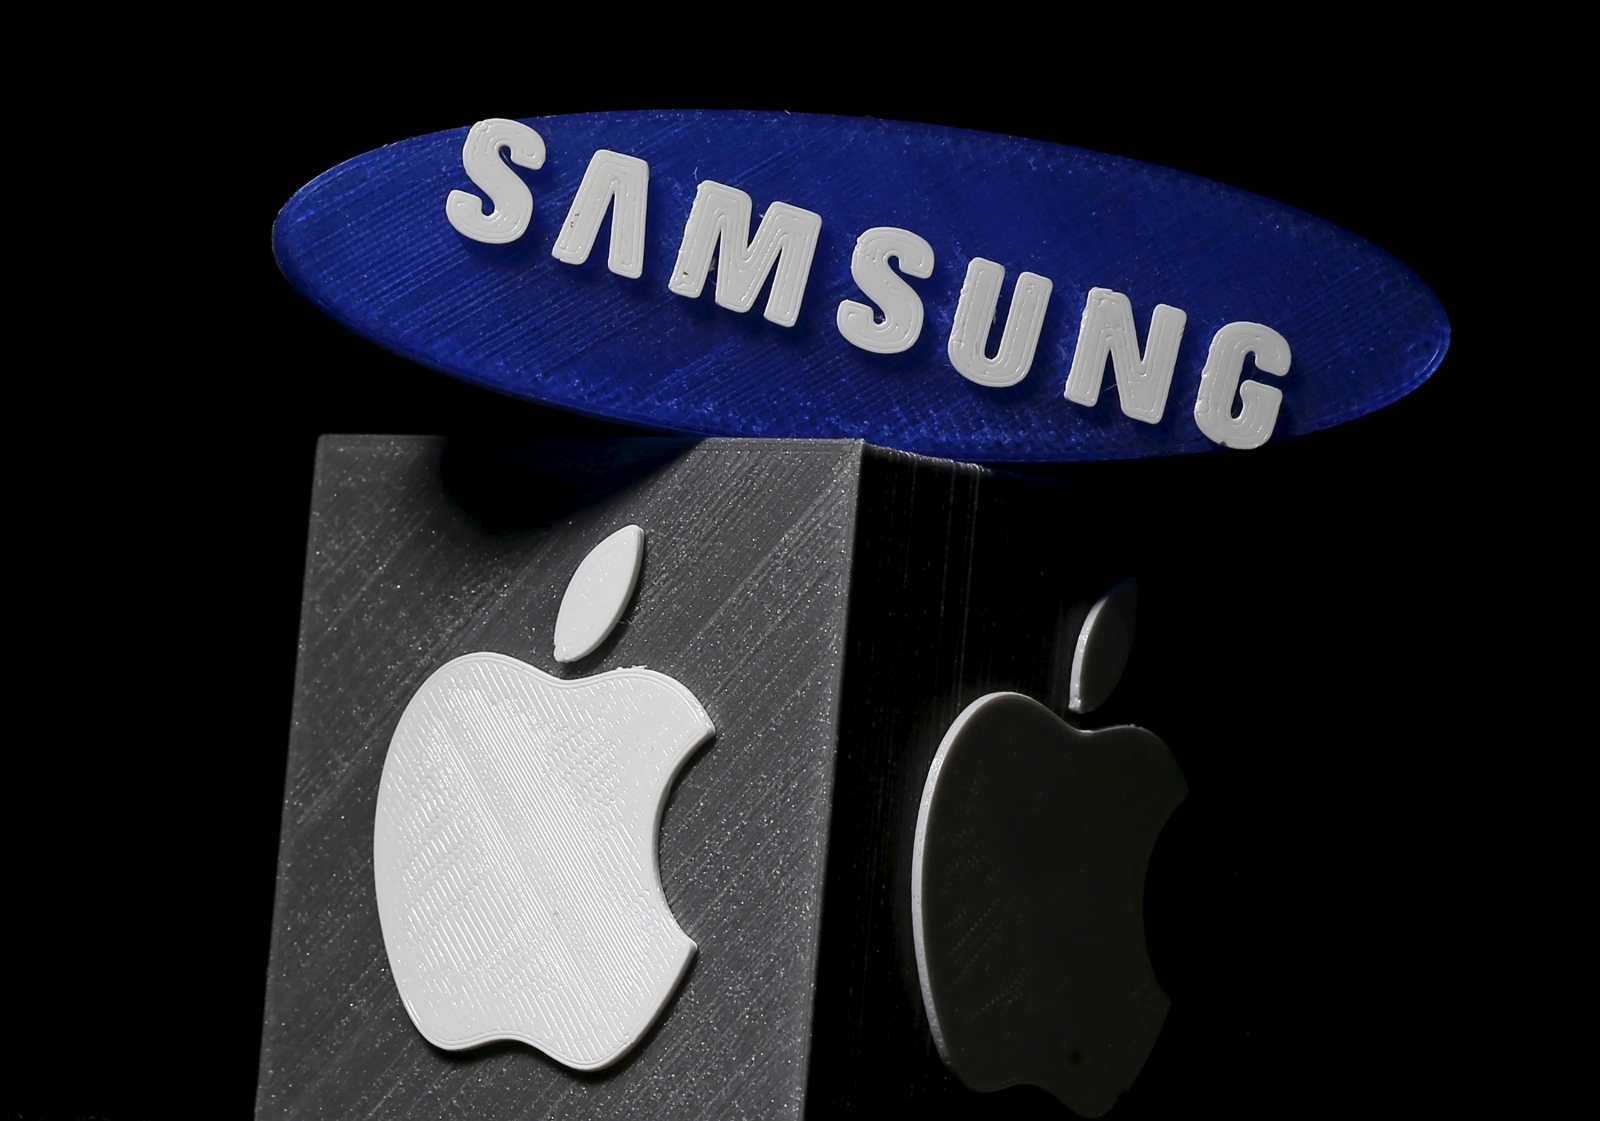 Samsung v Apple patent infringement case